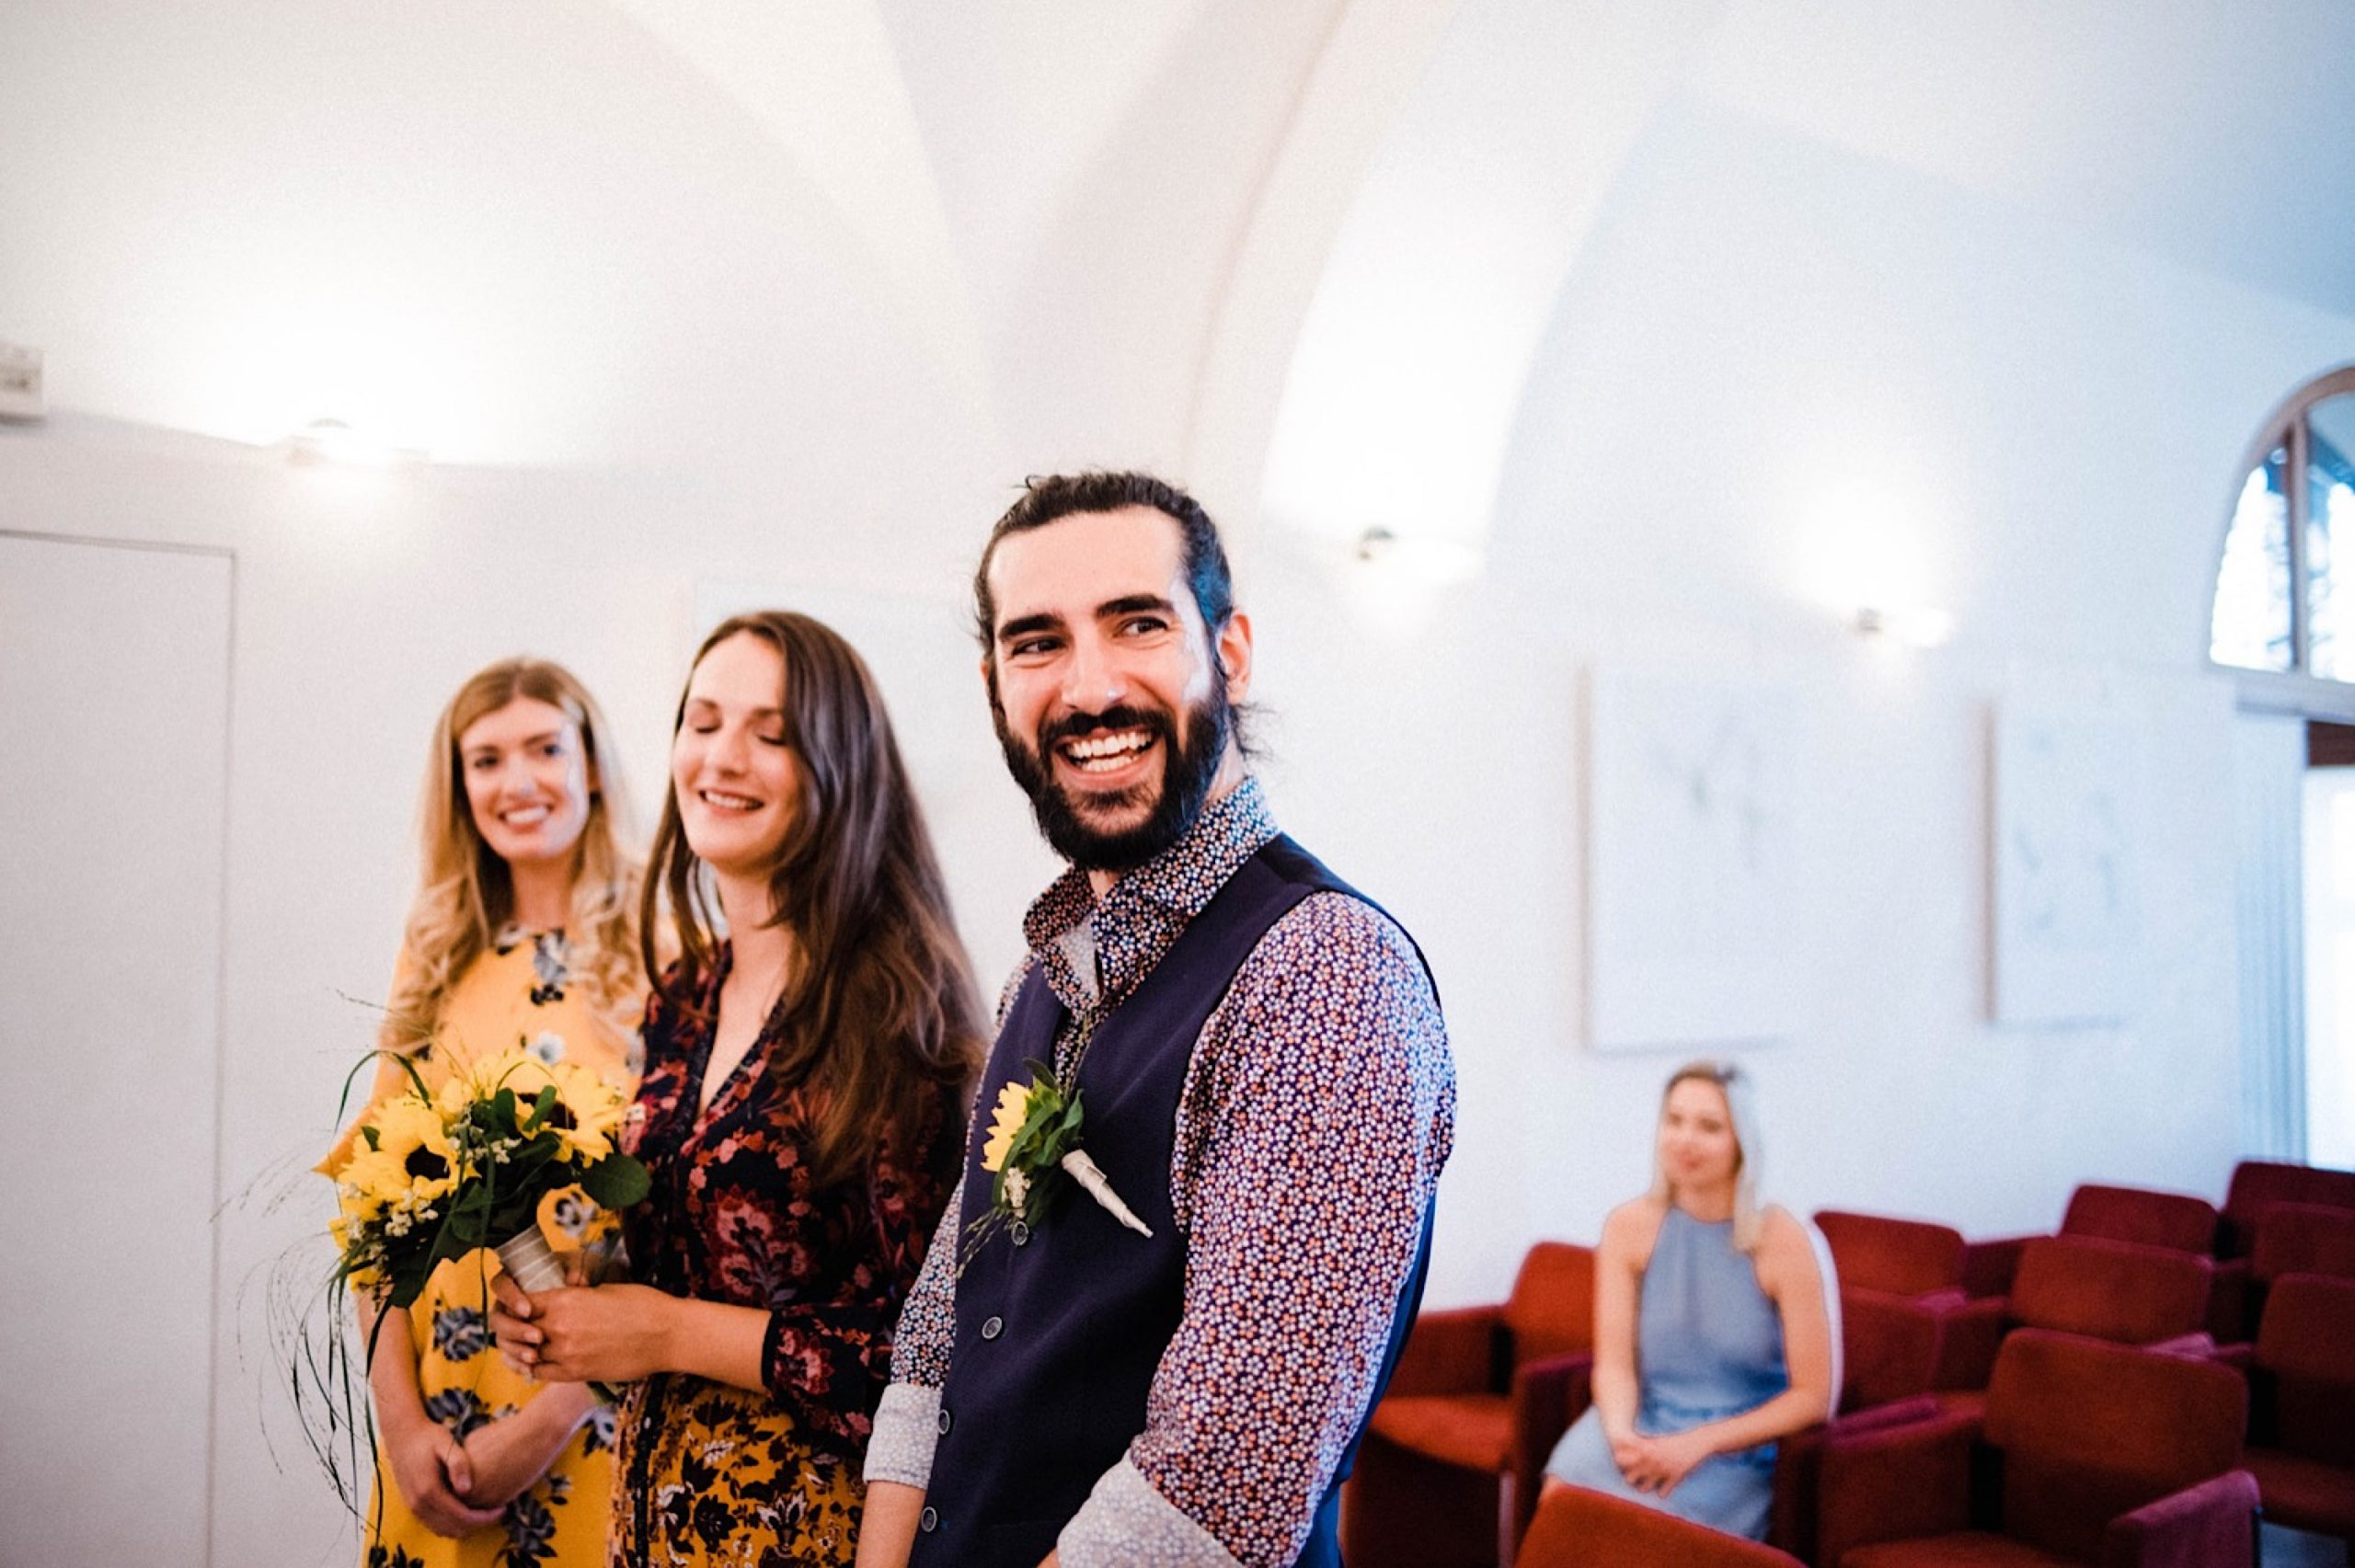 A wide photo of newlyweds smiling in the Sala Bobi Bazen in Trieste, Italy.